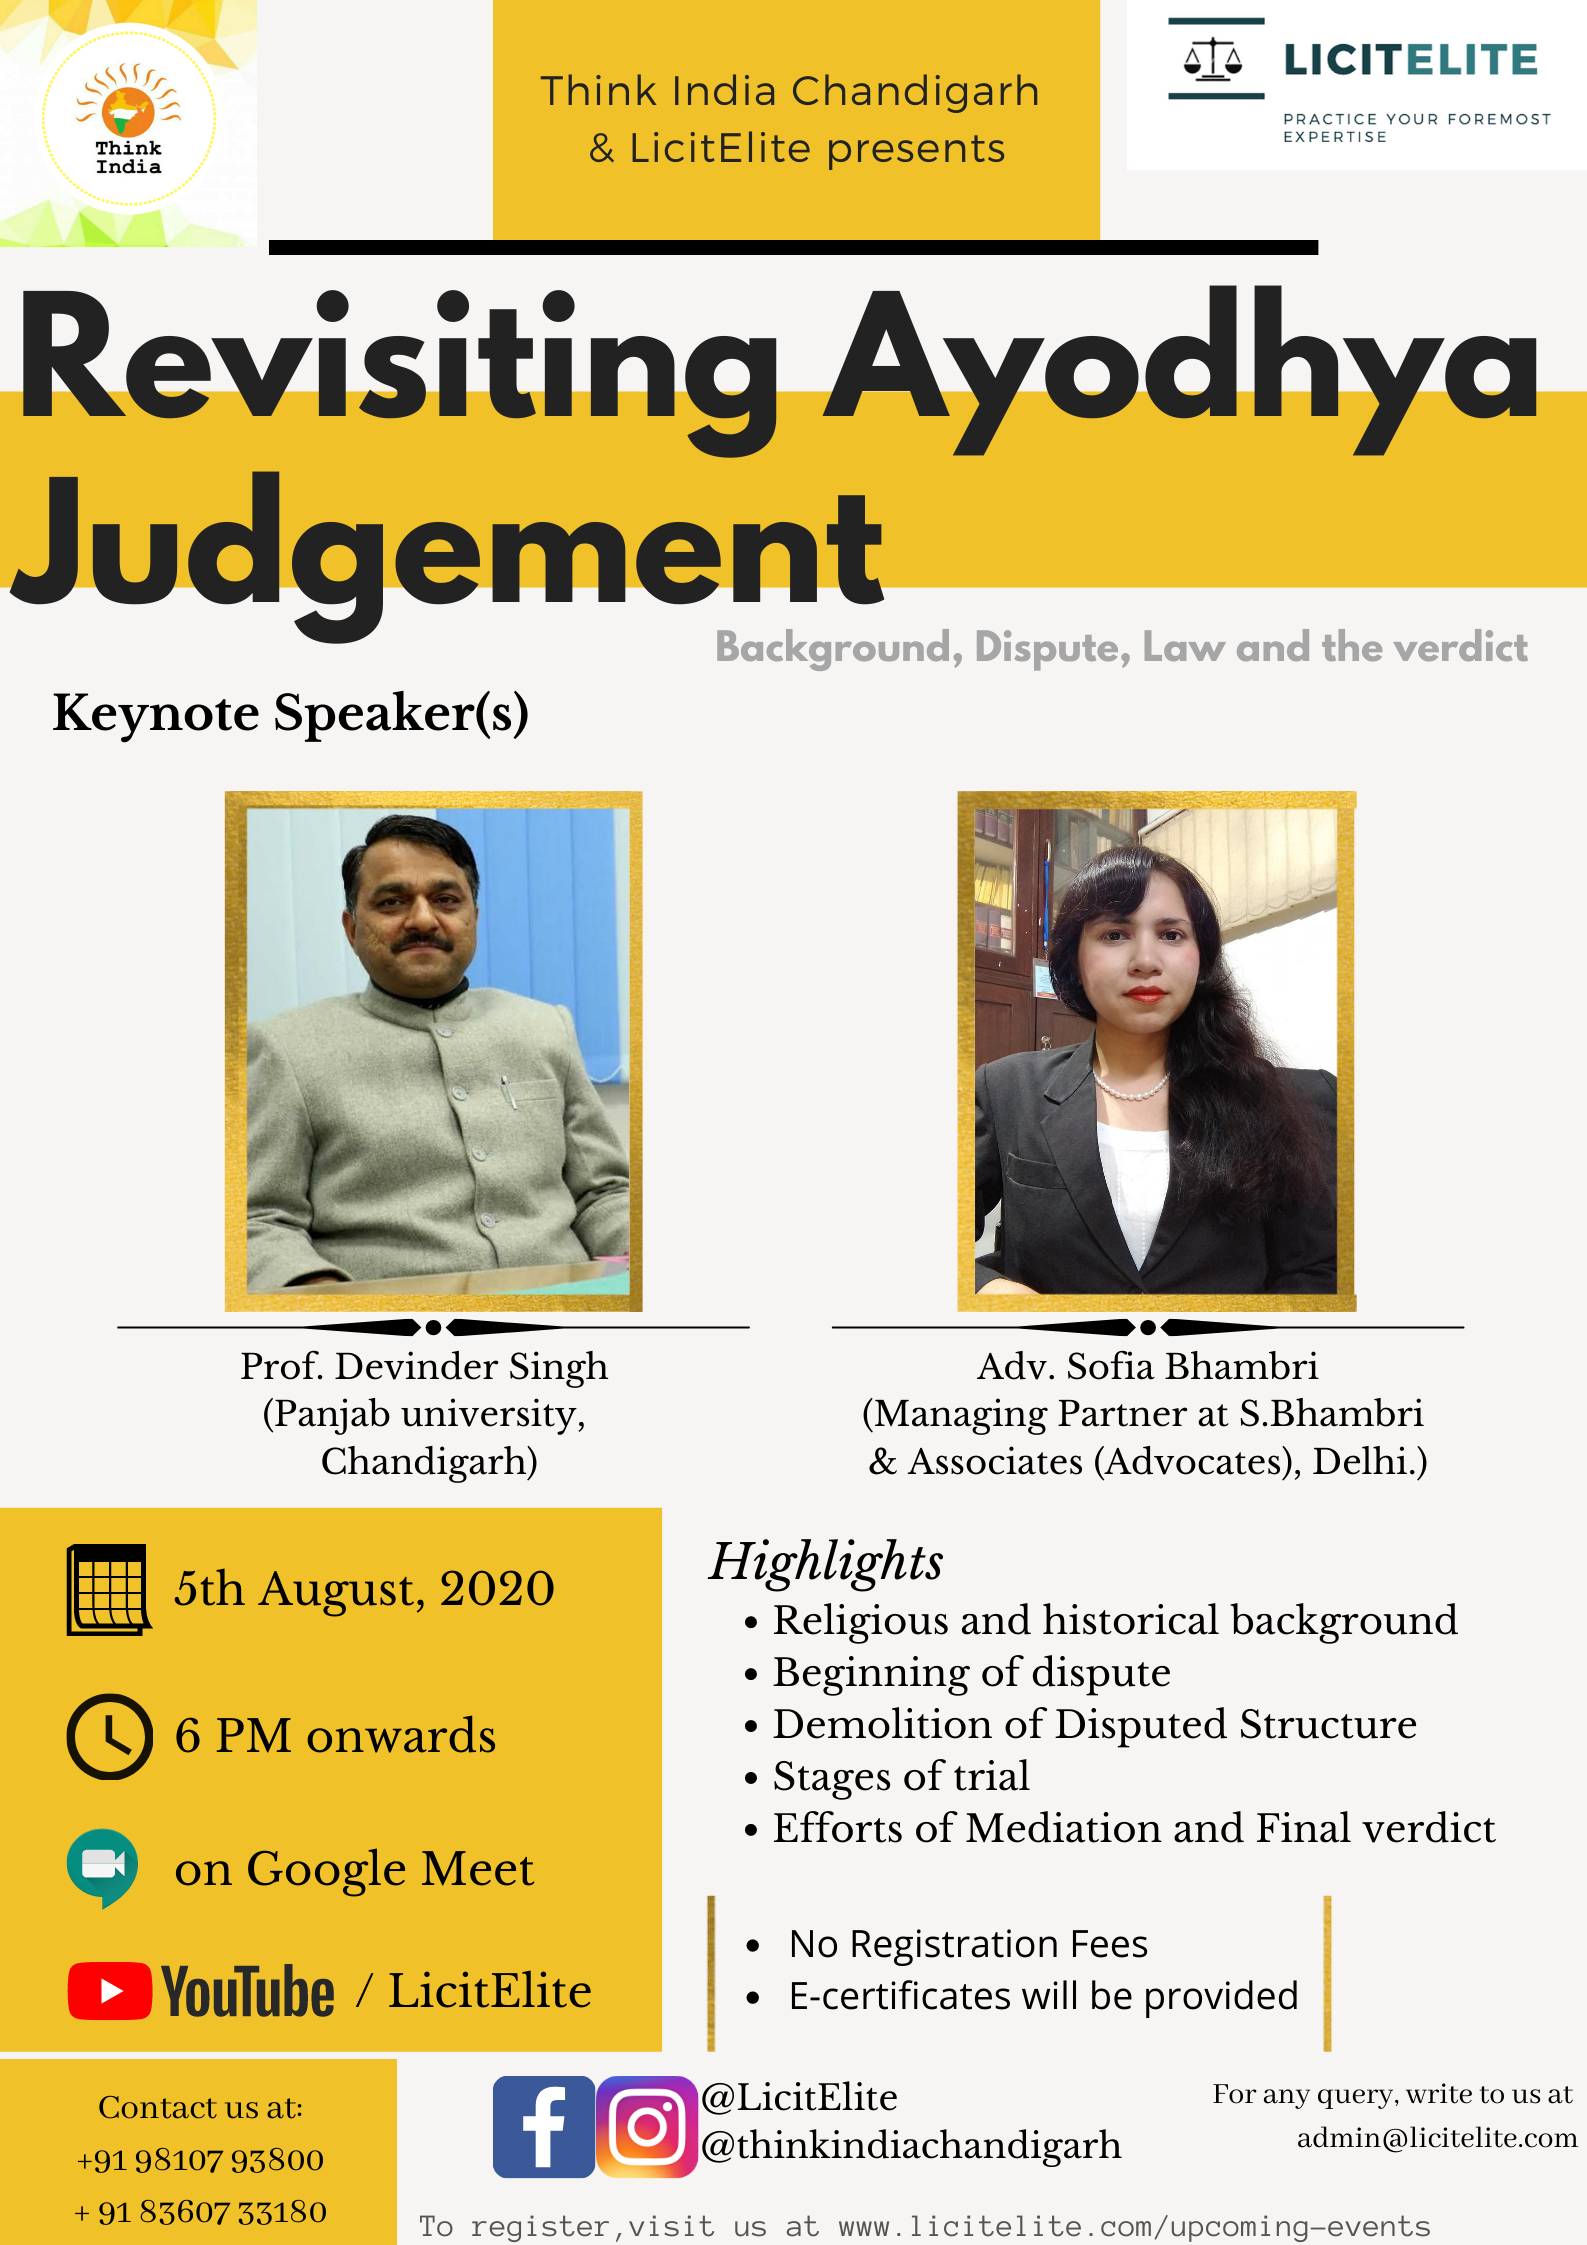 Webinar on Revisiting the Ayodhya Judgement